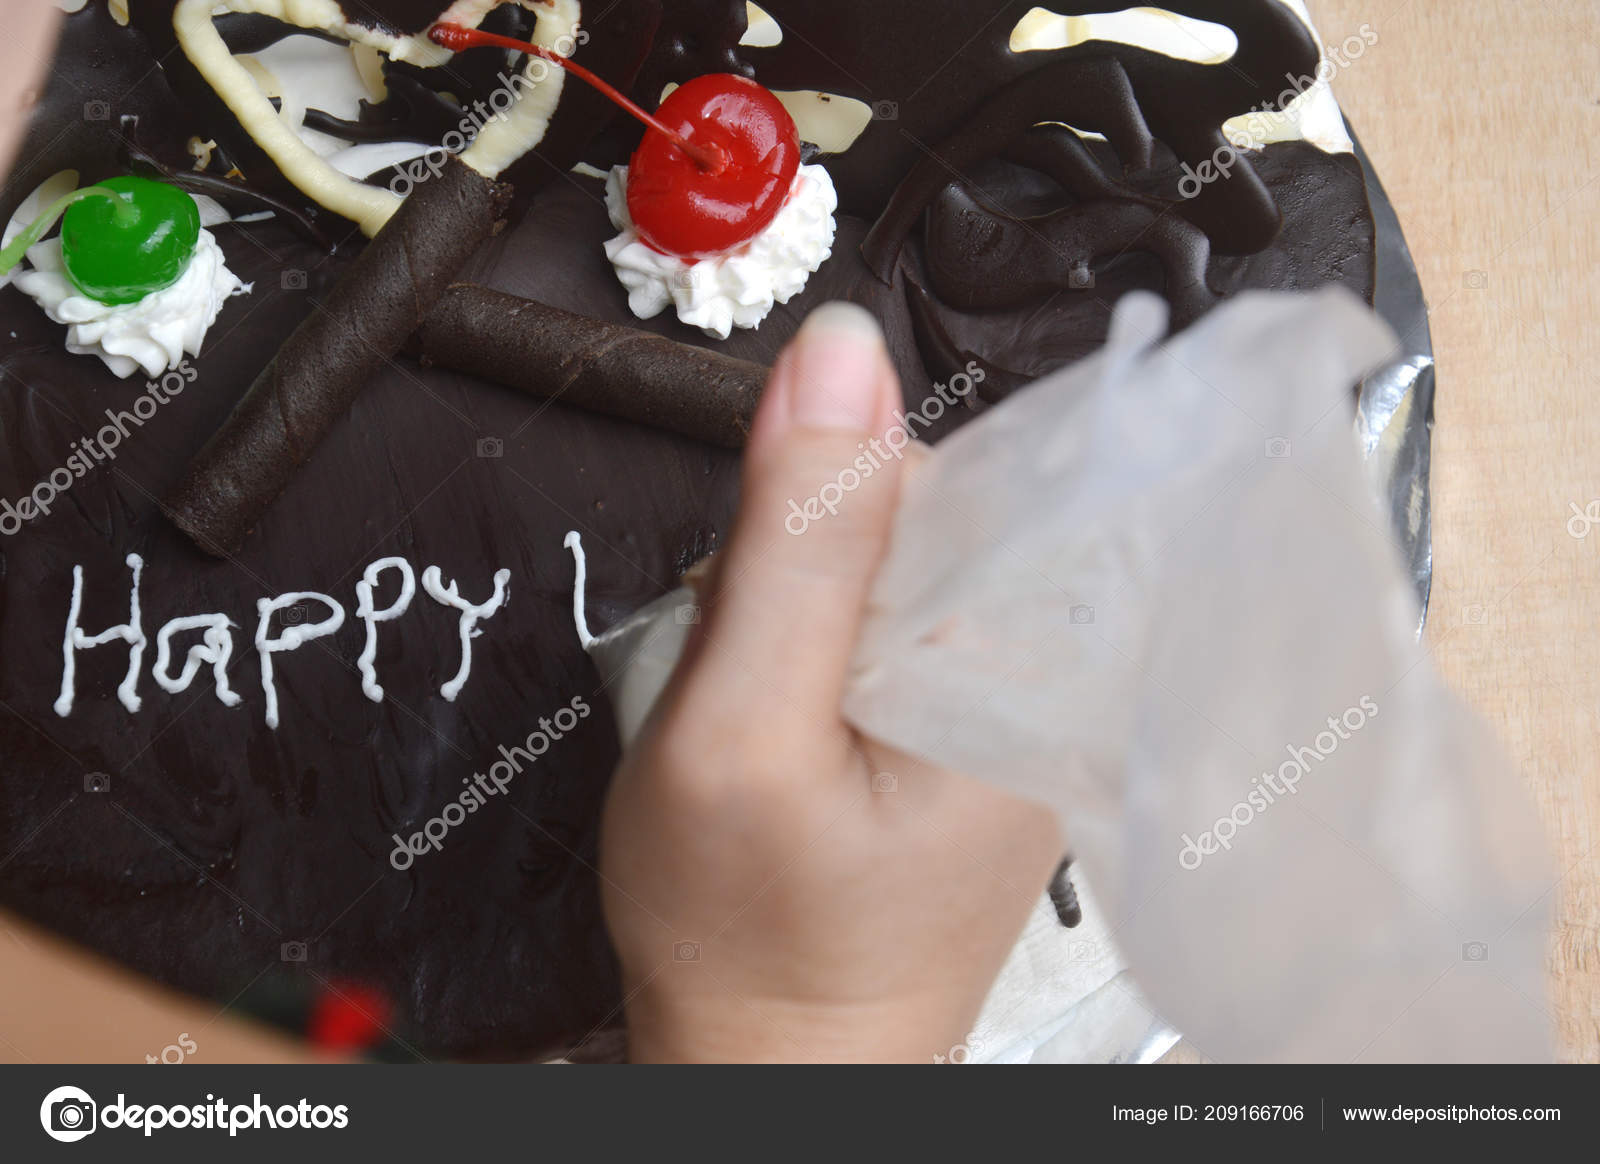 Miraculous Woman Hand Writing Birthday Cake Wooden Table Stock Photo Funny Birthday Cards Online Sheoxdamsfinfo